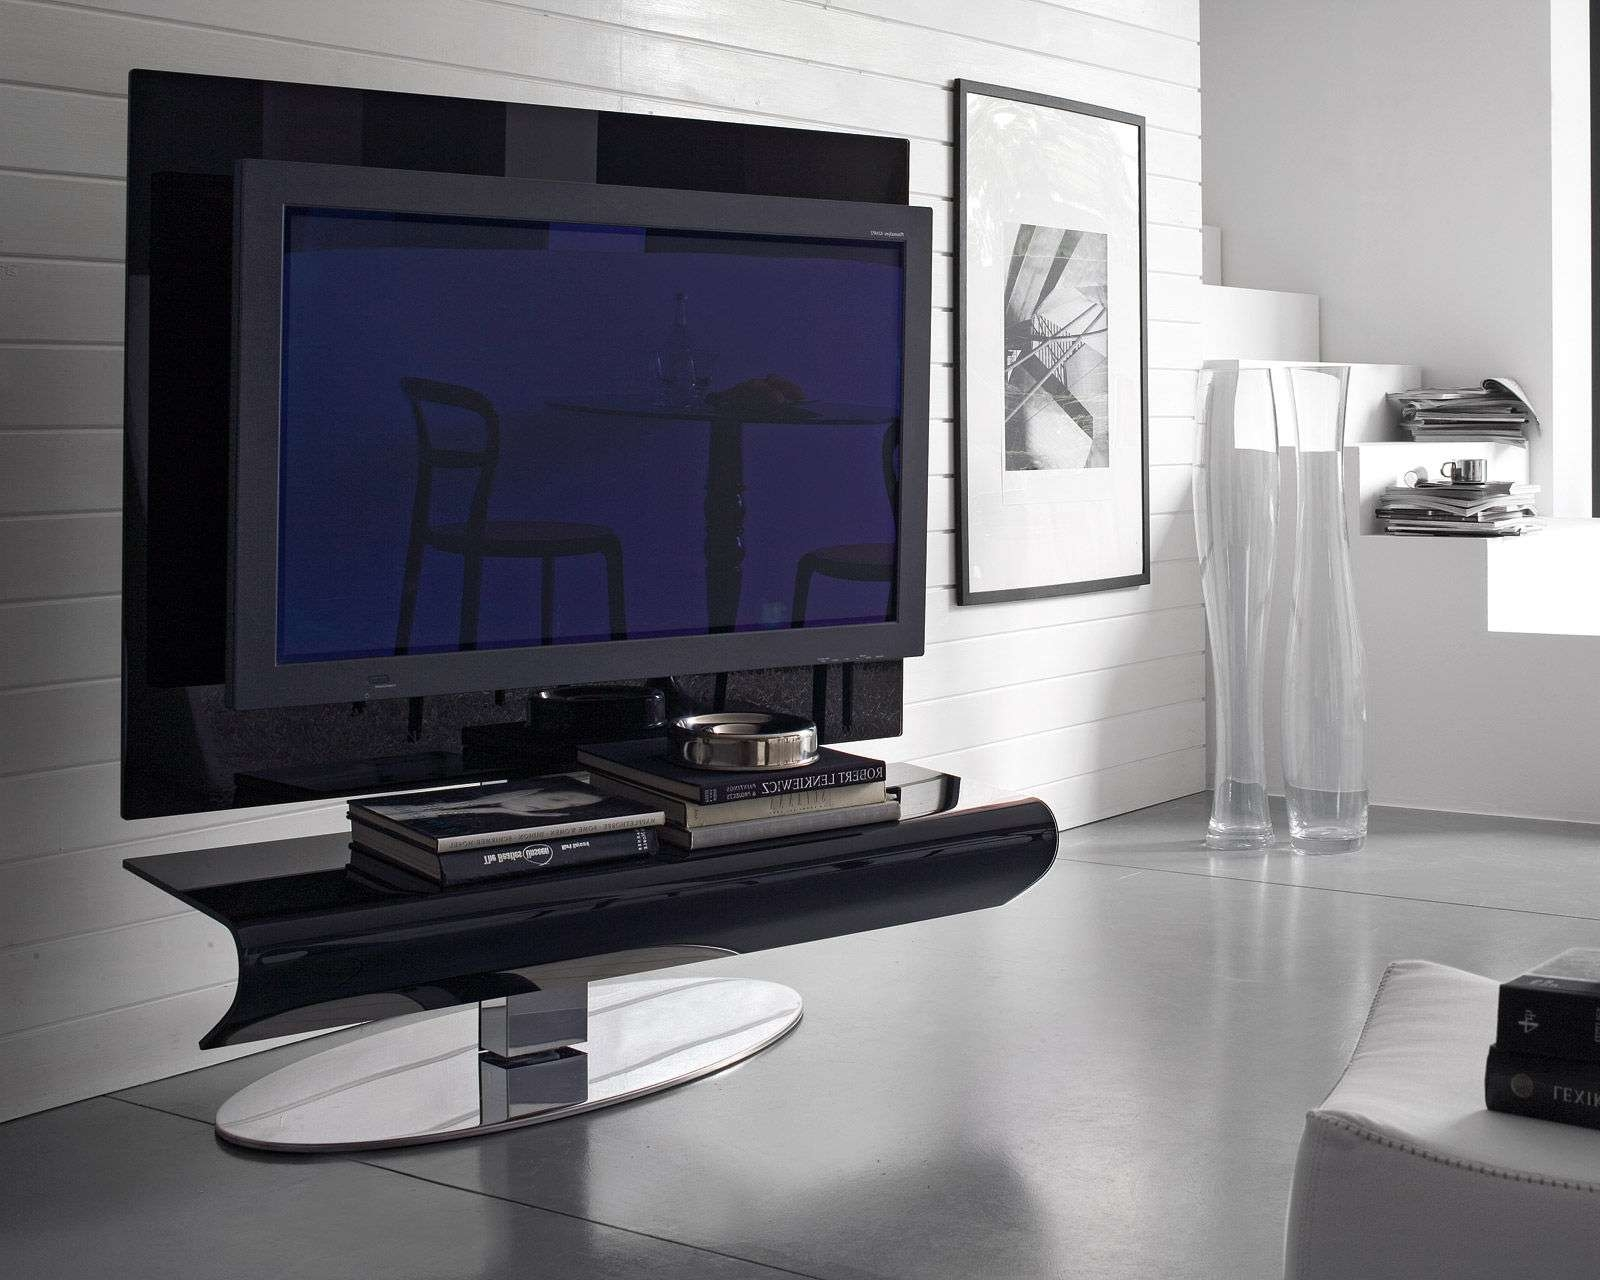 Sophisticated Glossy Freestanding Flat Screen Tv Stand With Mount Throughout Freestanding Tv Stands (View 12 of 15)